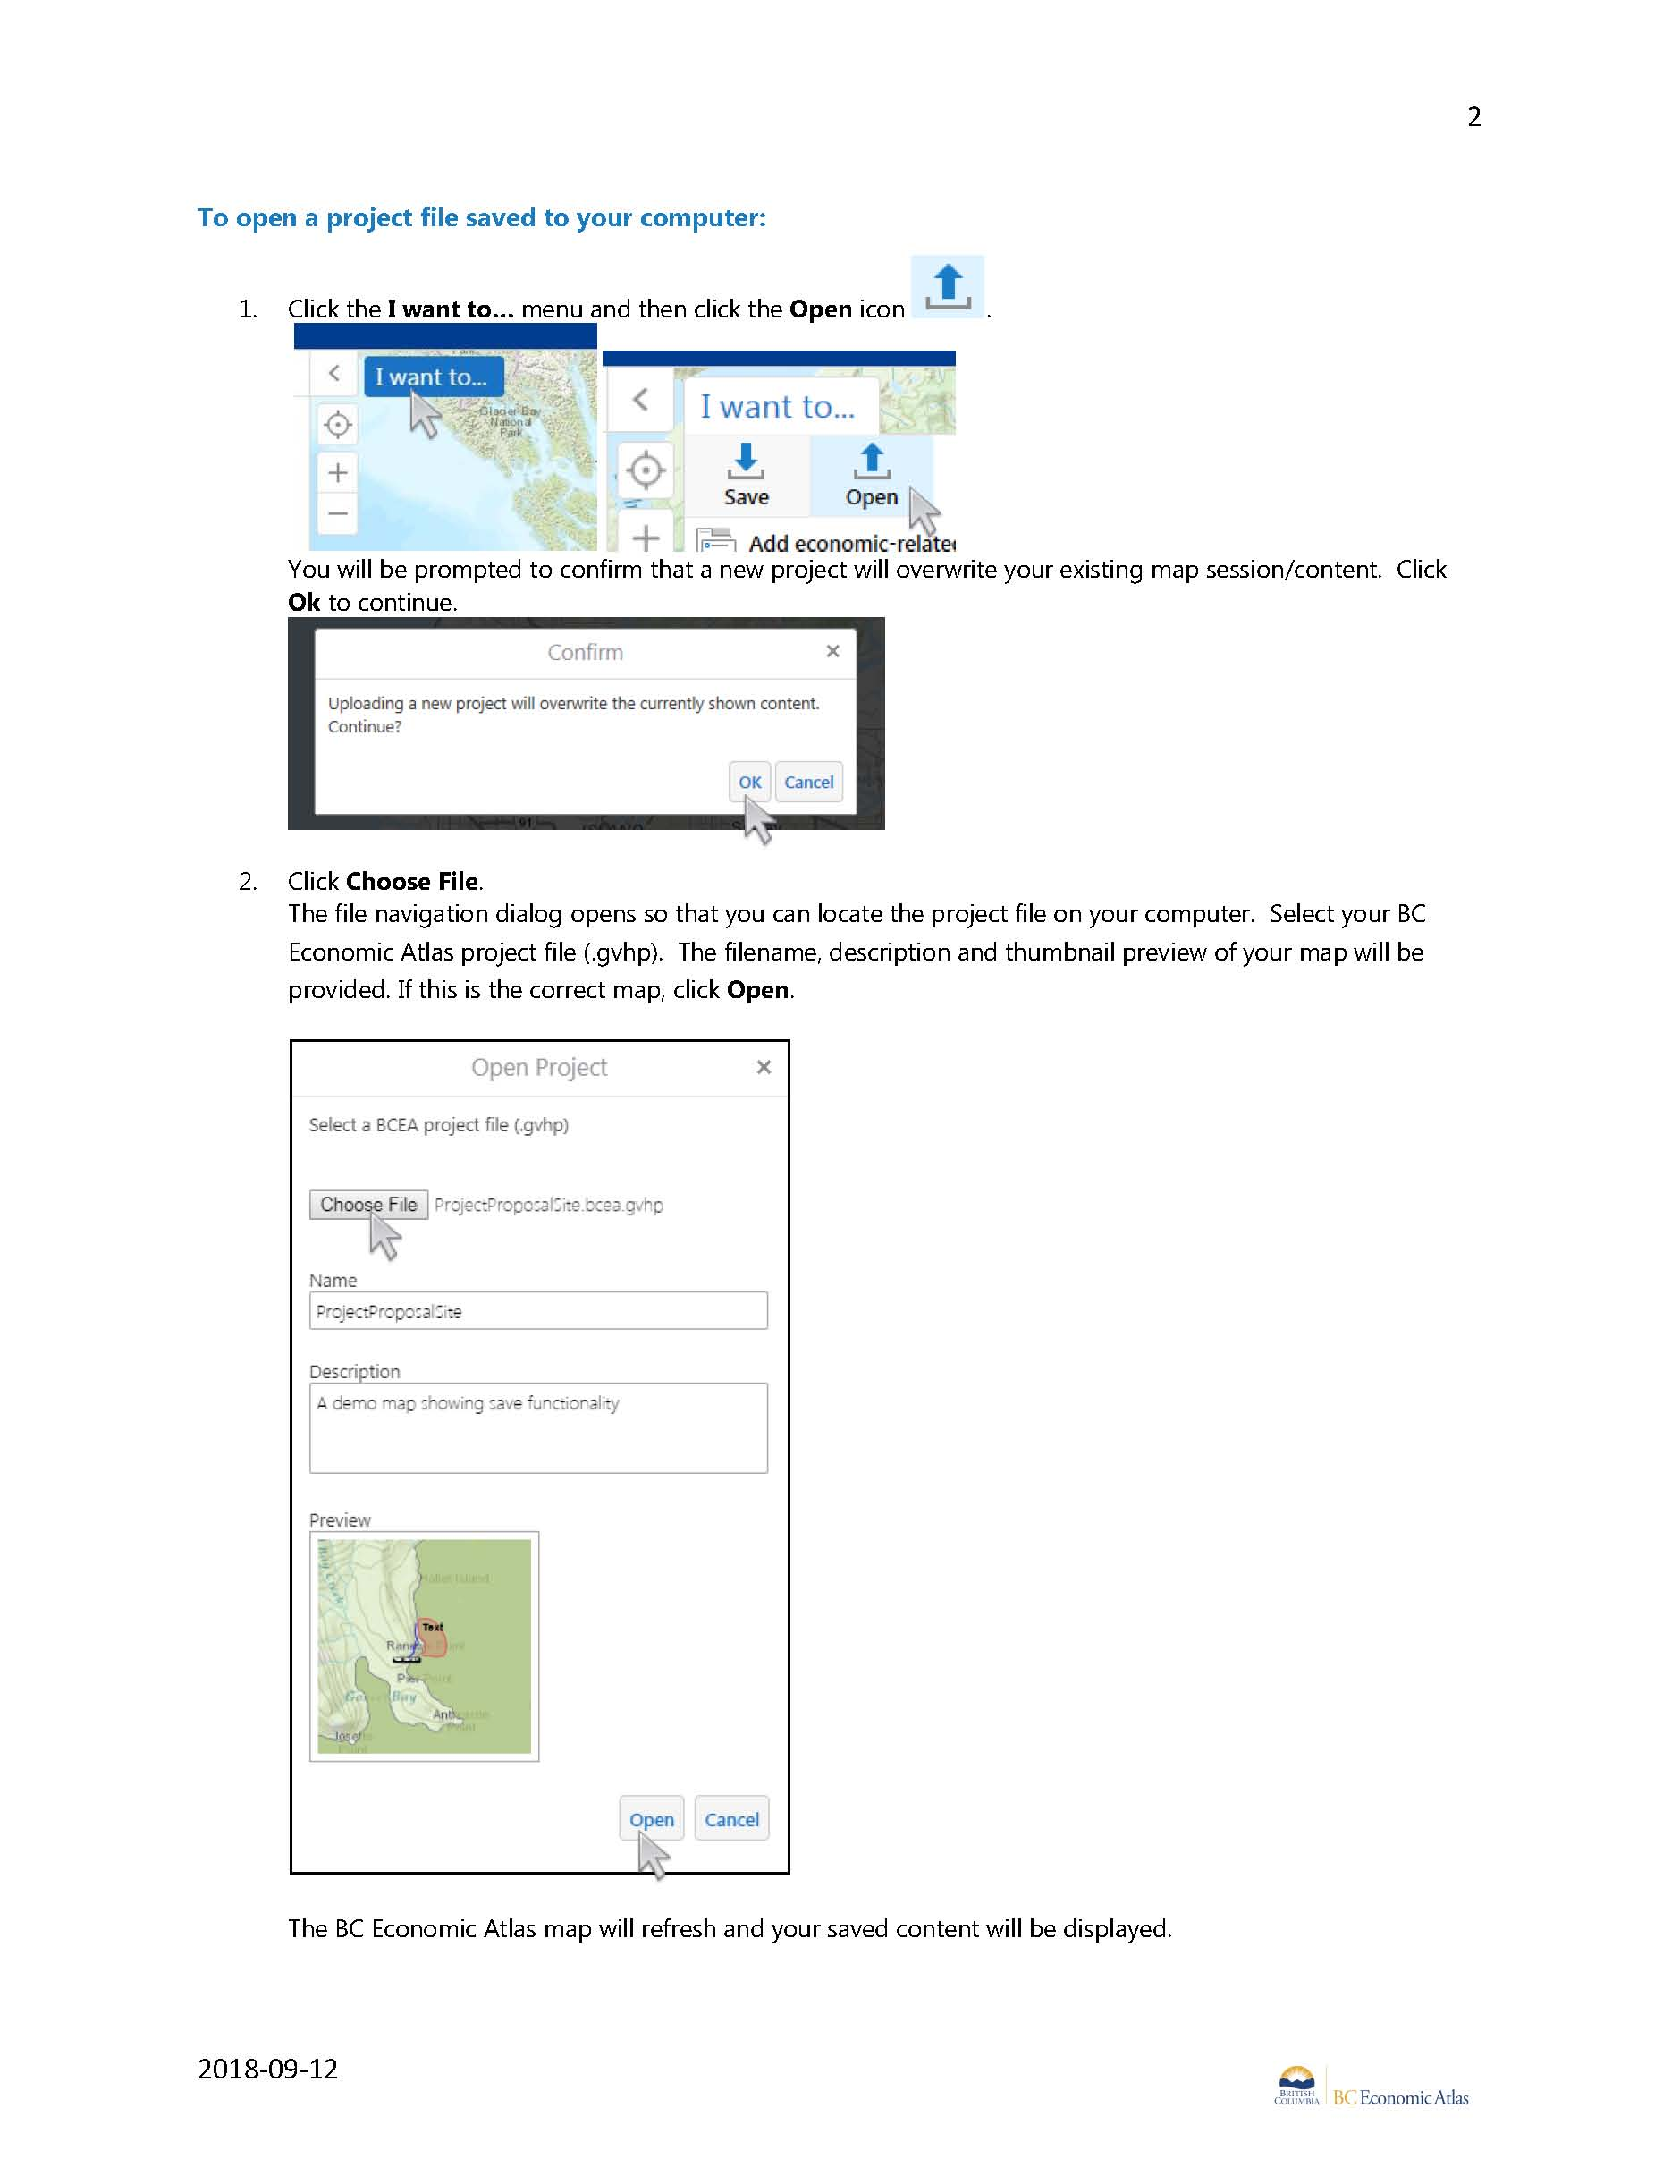 BC Economic Atlas now provides Save Project functionality